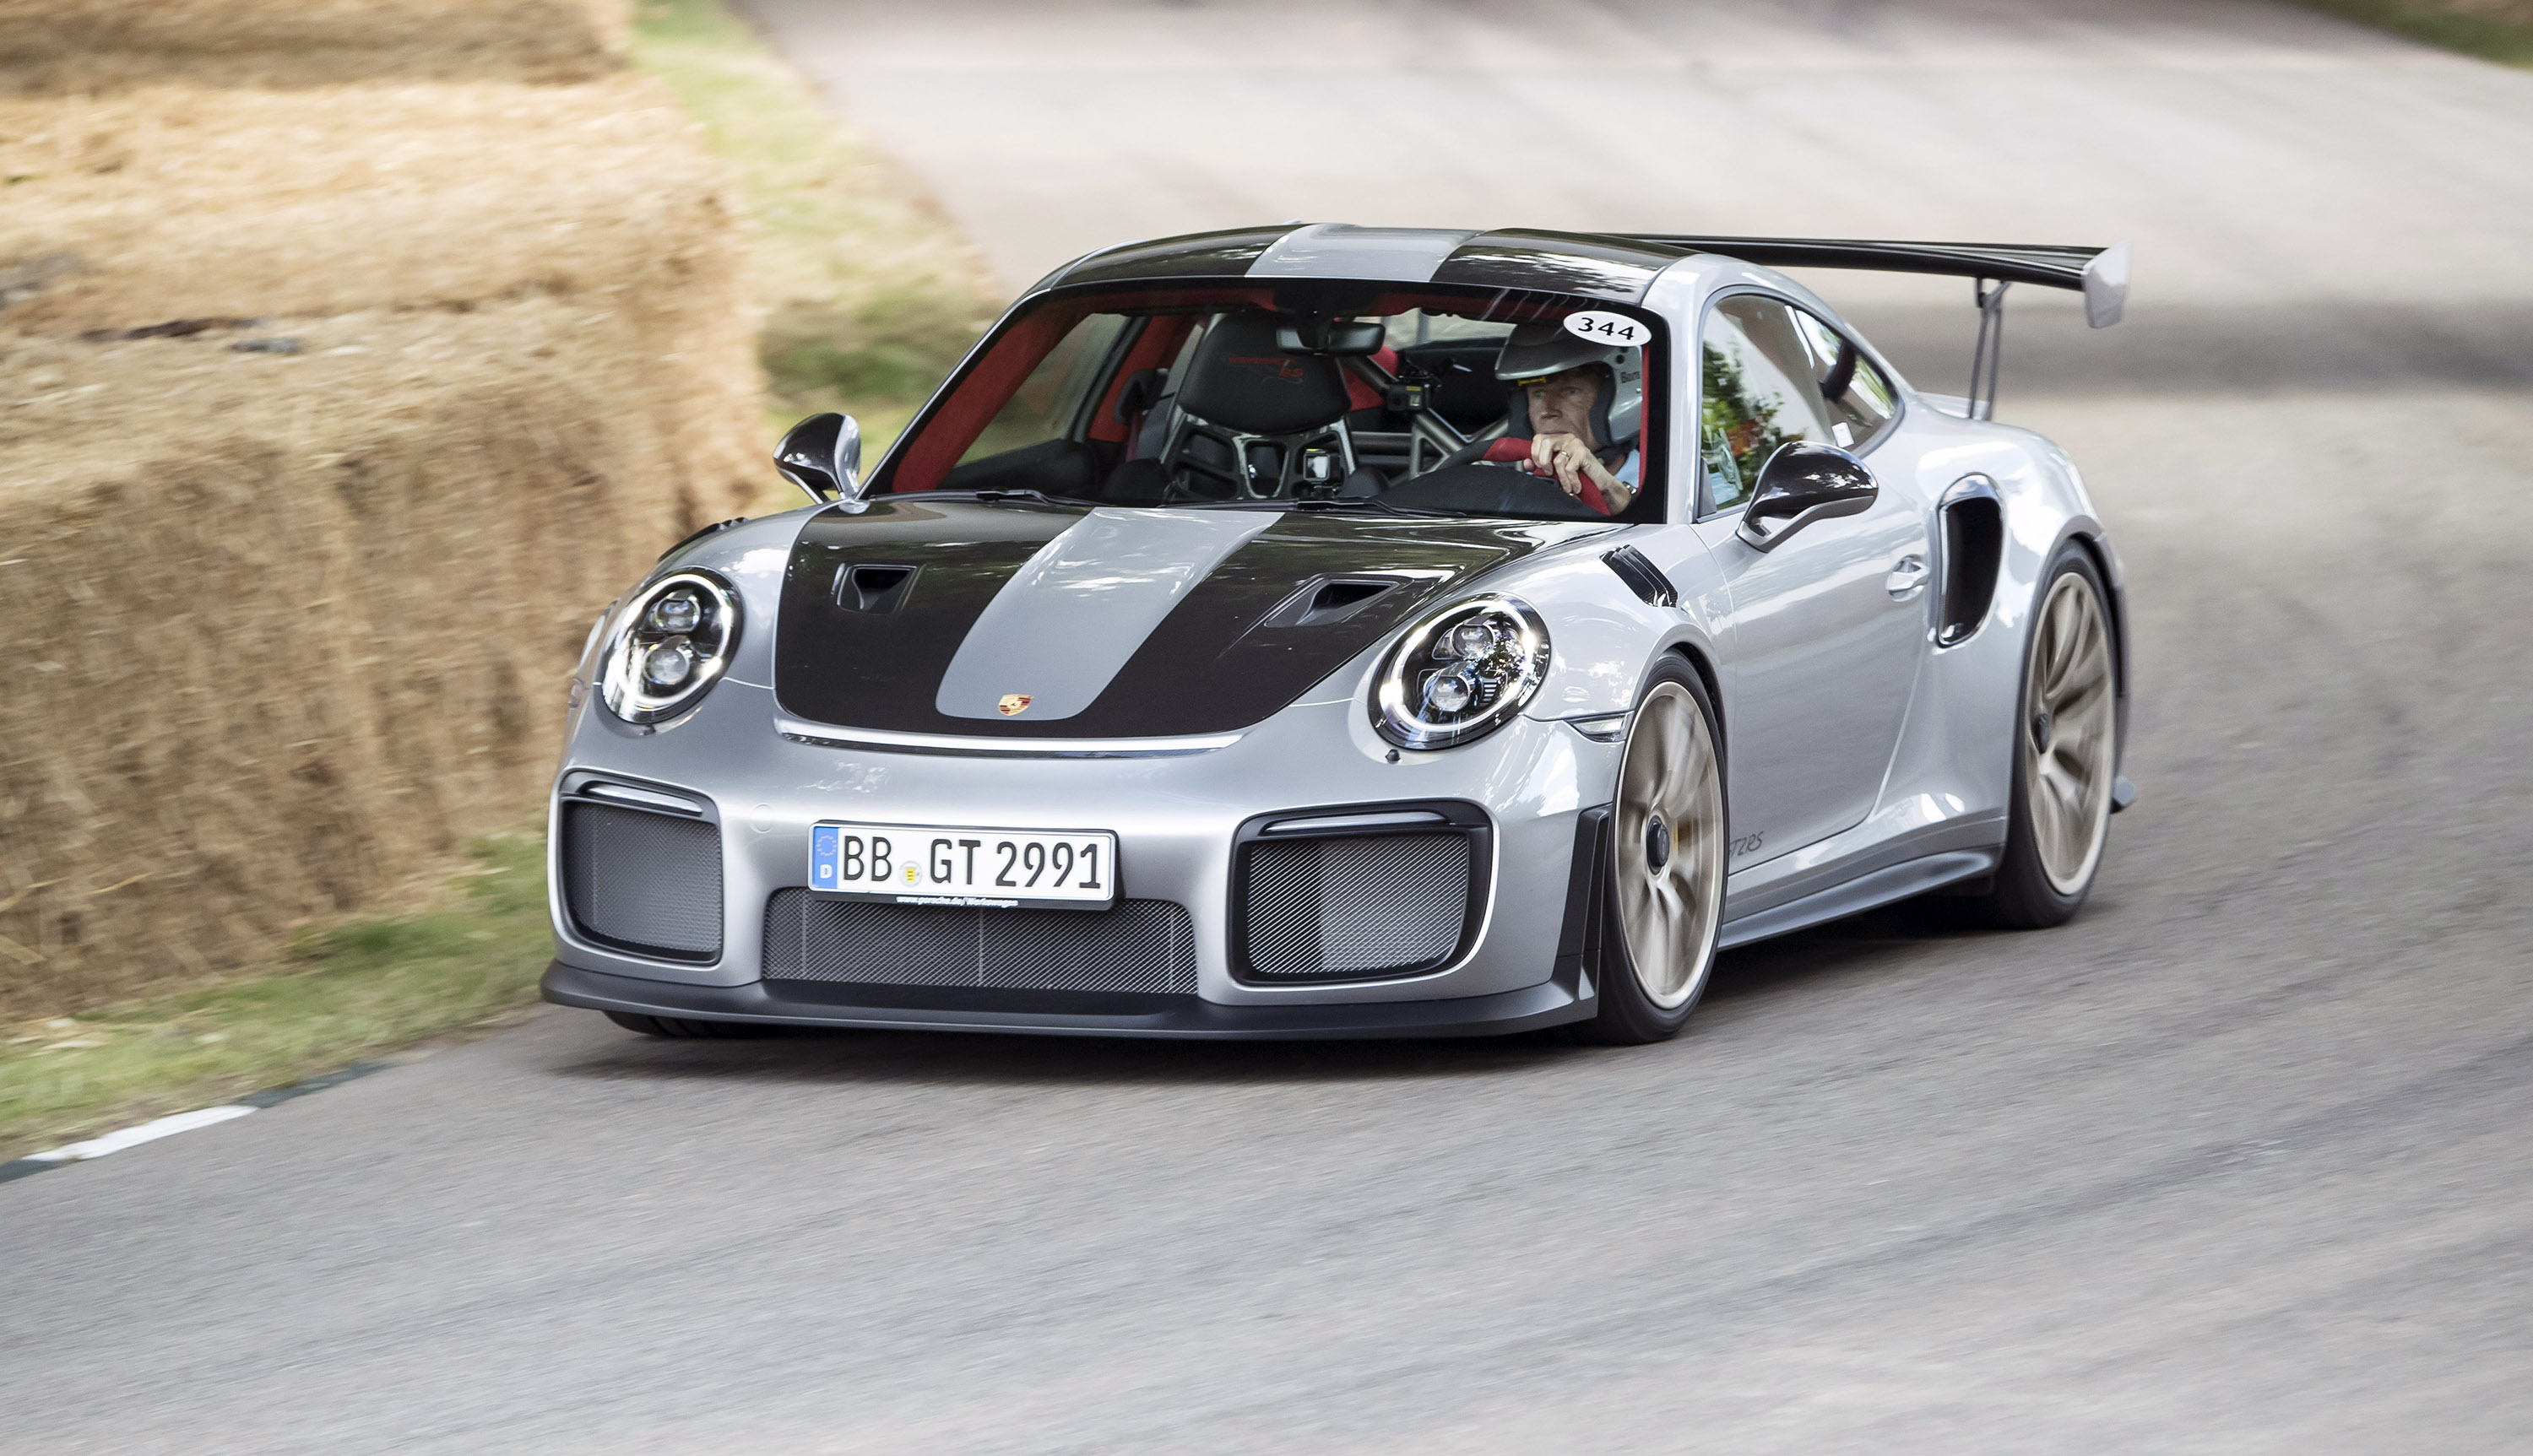 Porsche 911 Gt2 Rs Walter Rohrl Says Mega Power Figure